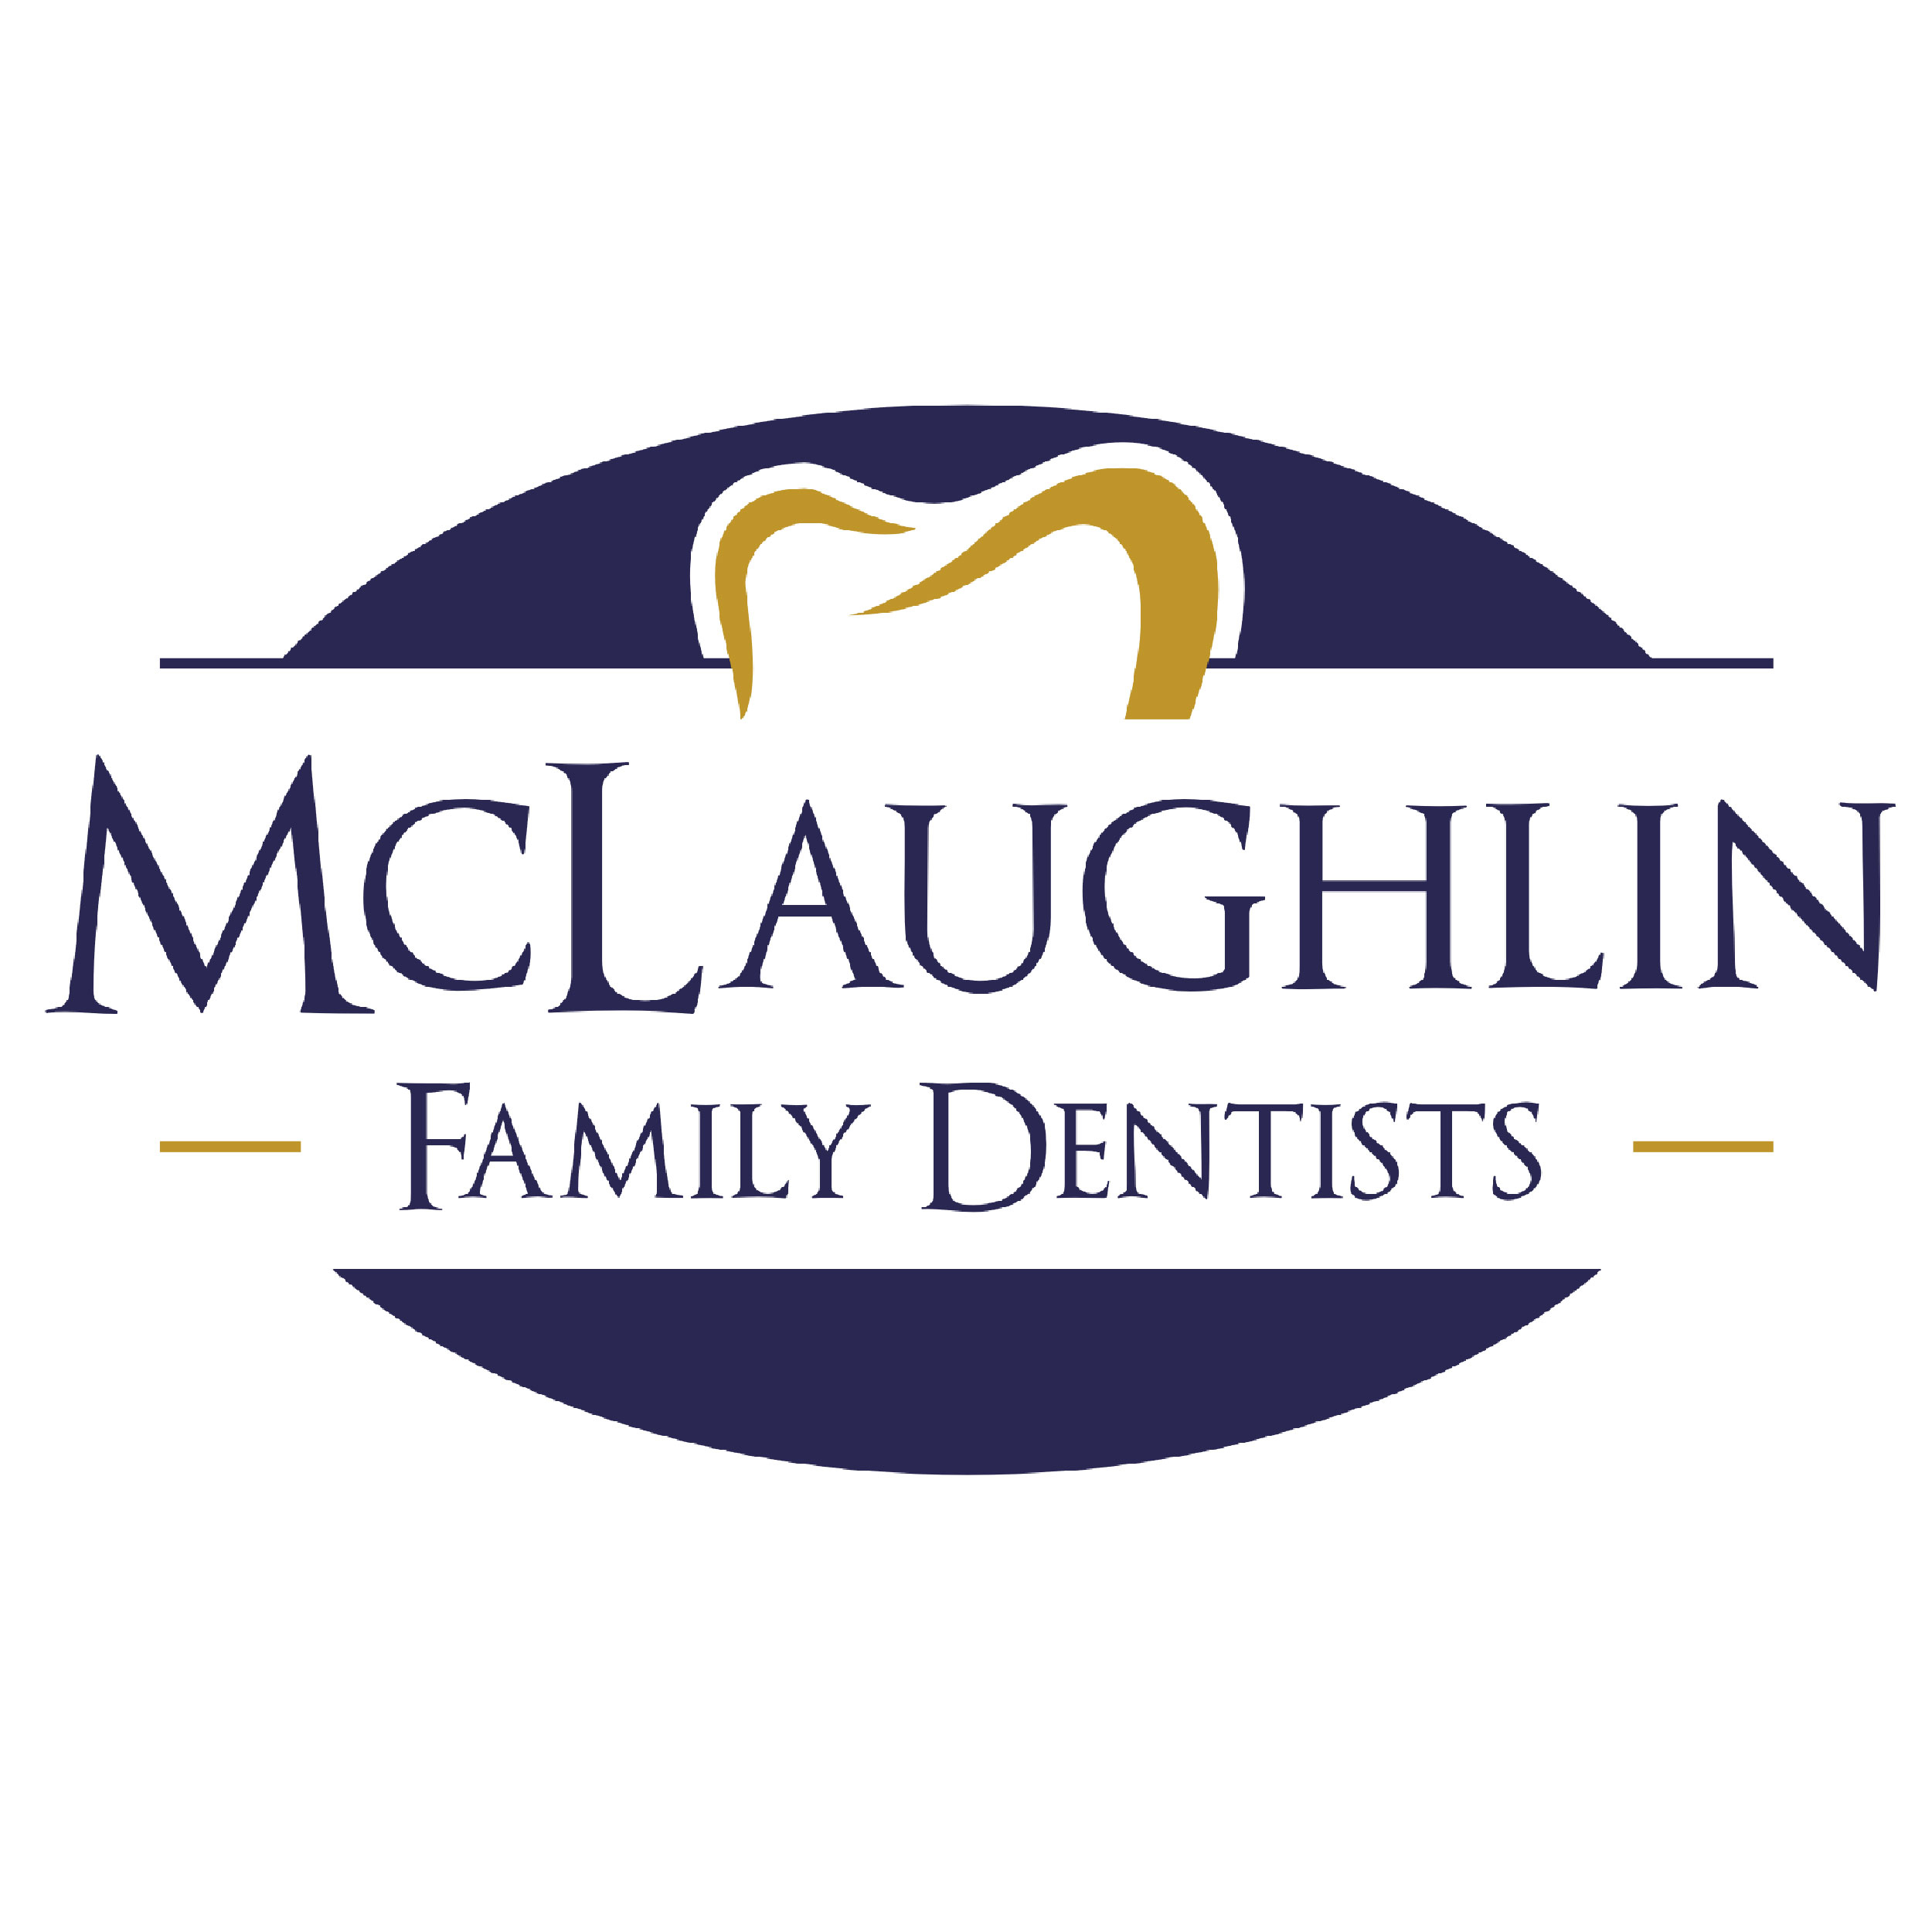 McLaughlin Family Dentists - West Roxbury